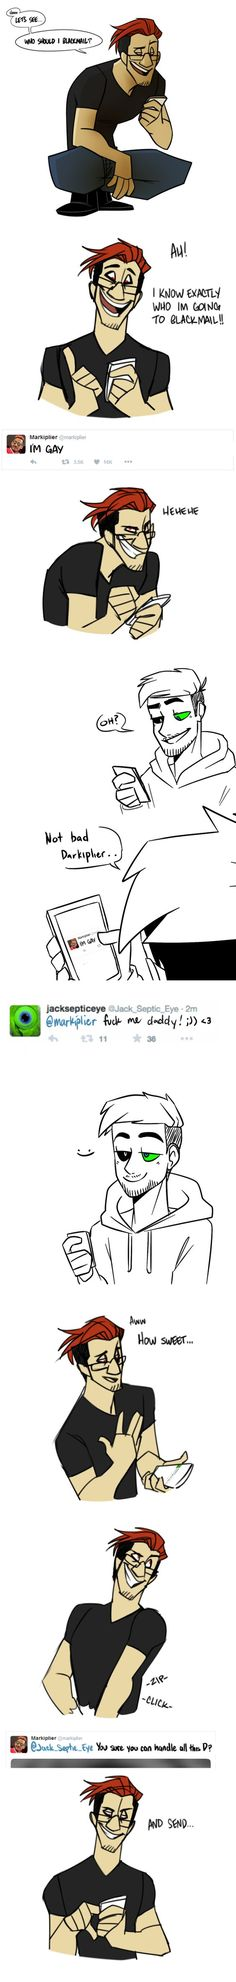 I don't ships septiplier, but I just love the fan art, especially with Darkiplier and Antisepticeye